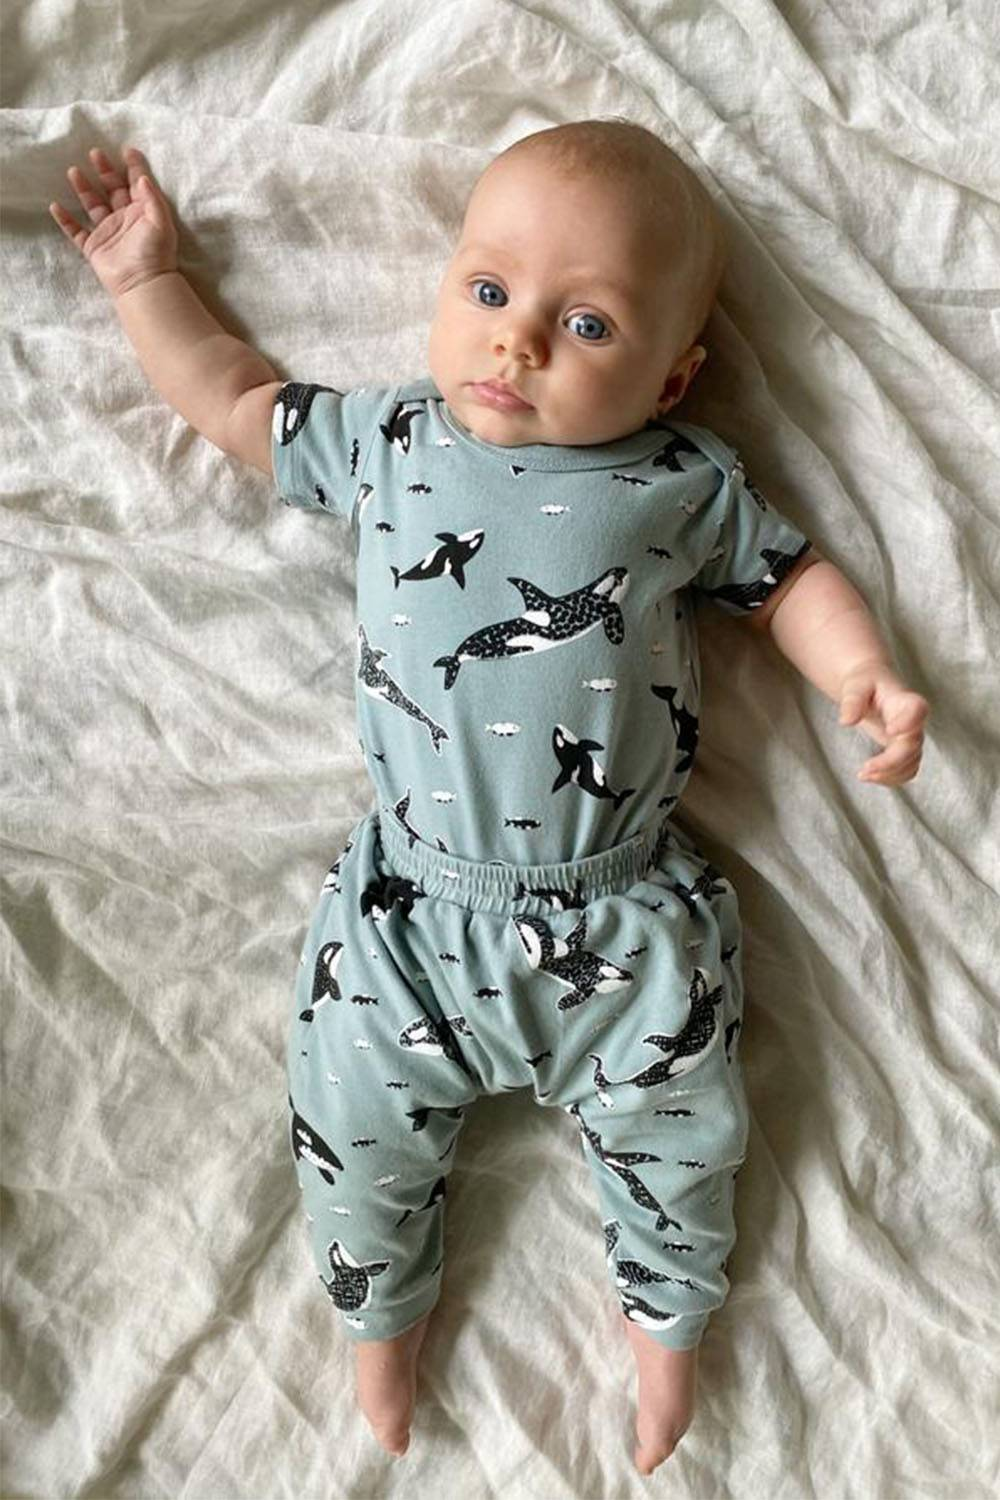 made trade baby clothes not made in china